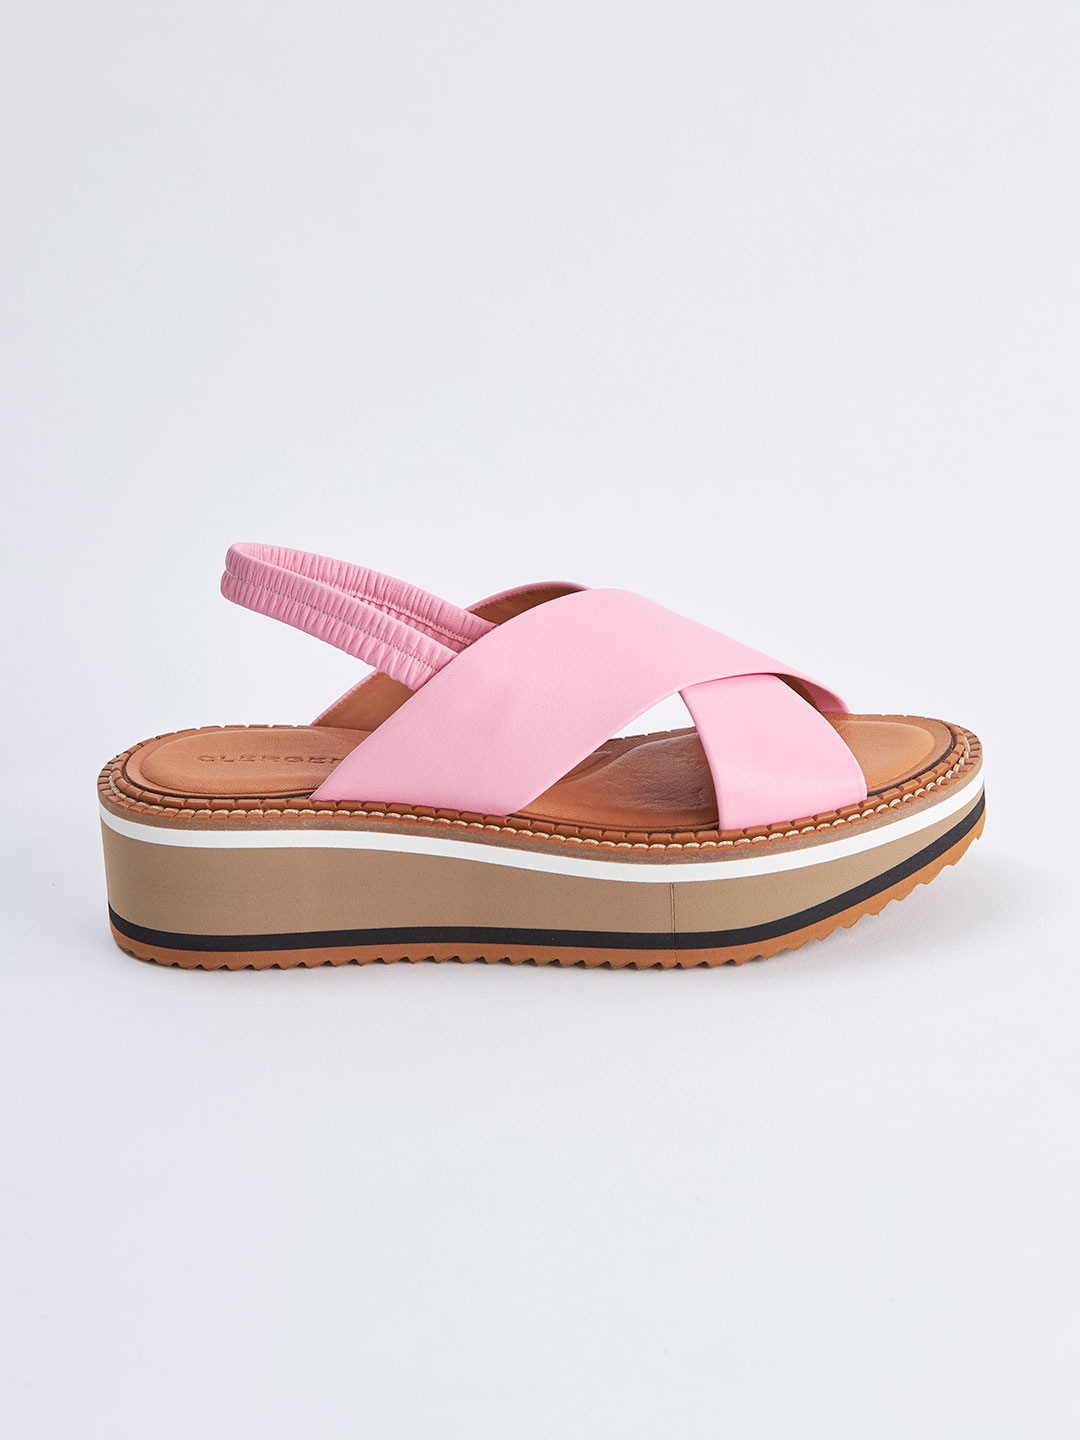 FREEDOM3 Cross Strap Sandals - Pink